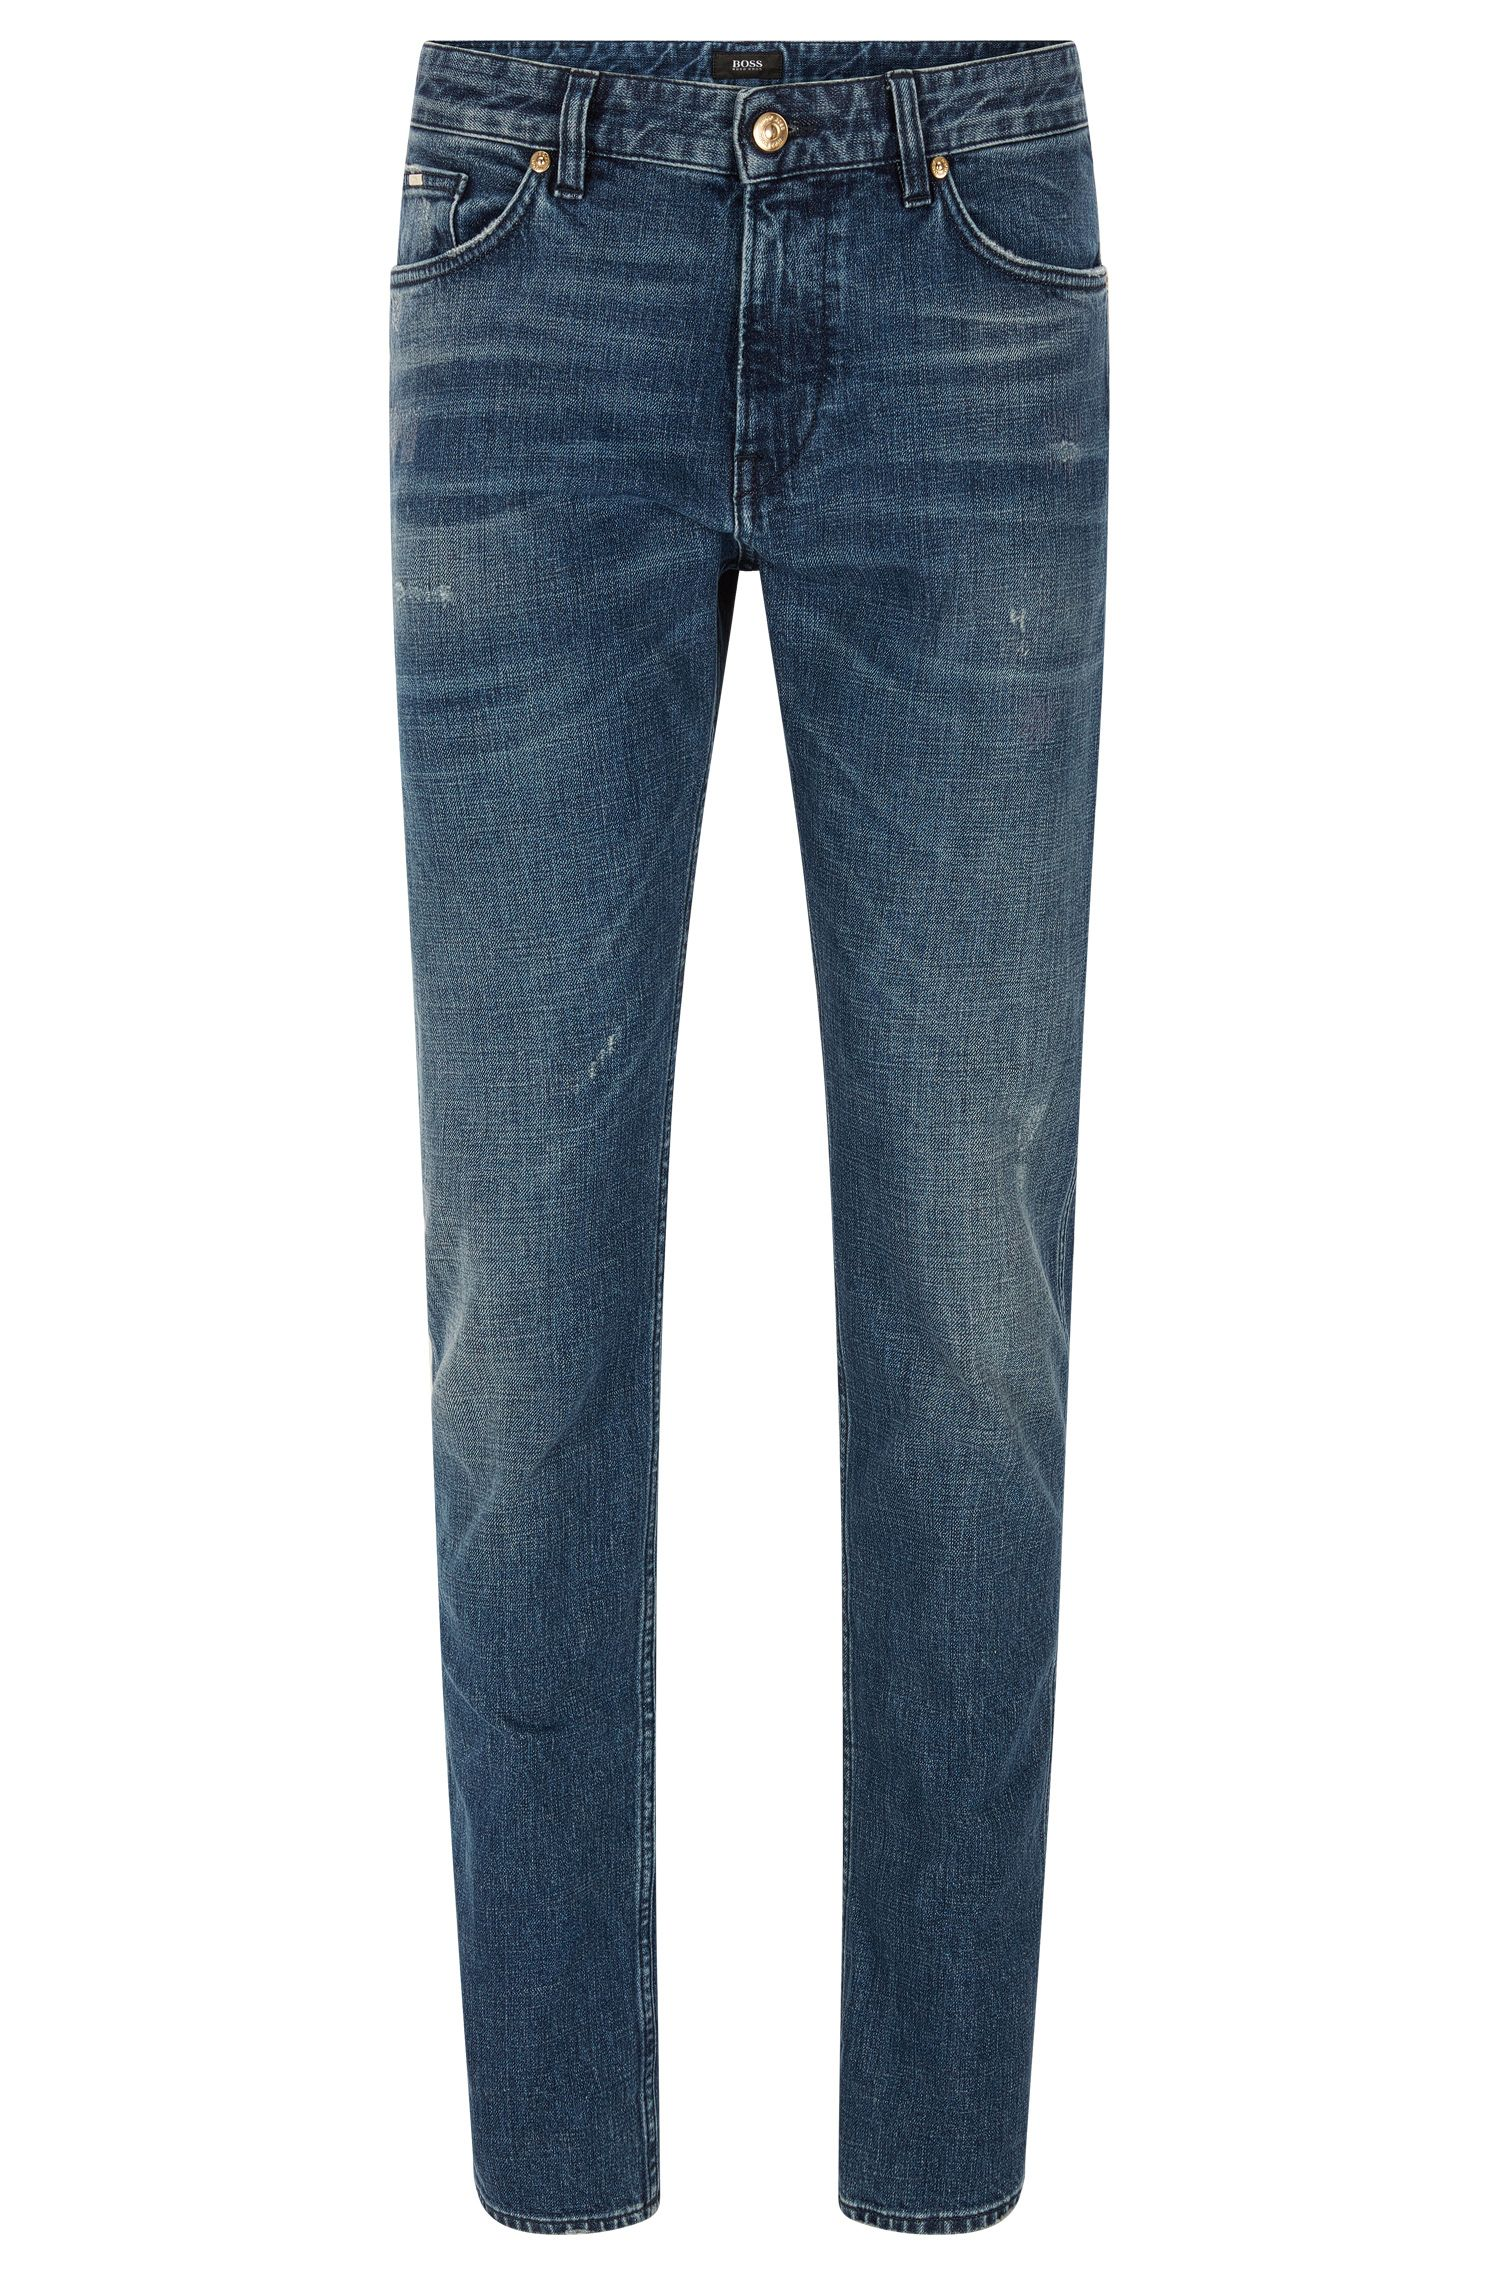 Slim-fit stretch denim jeans with vintage distressing